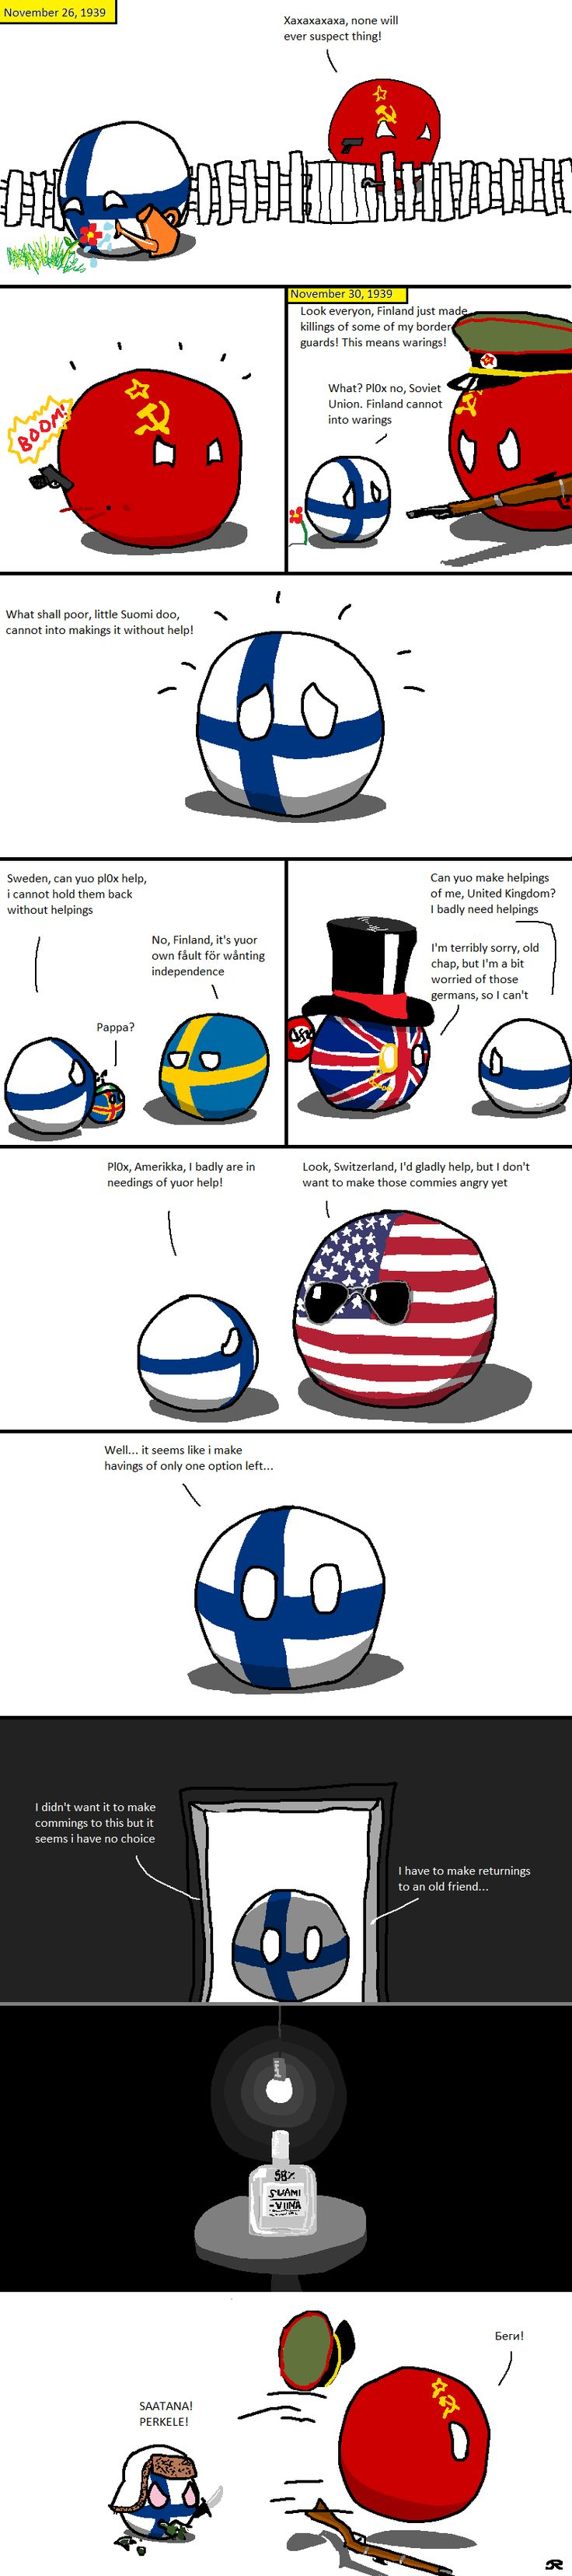 The Finnish solution